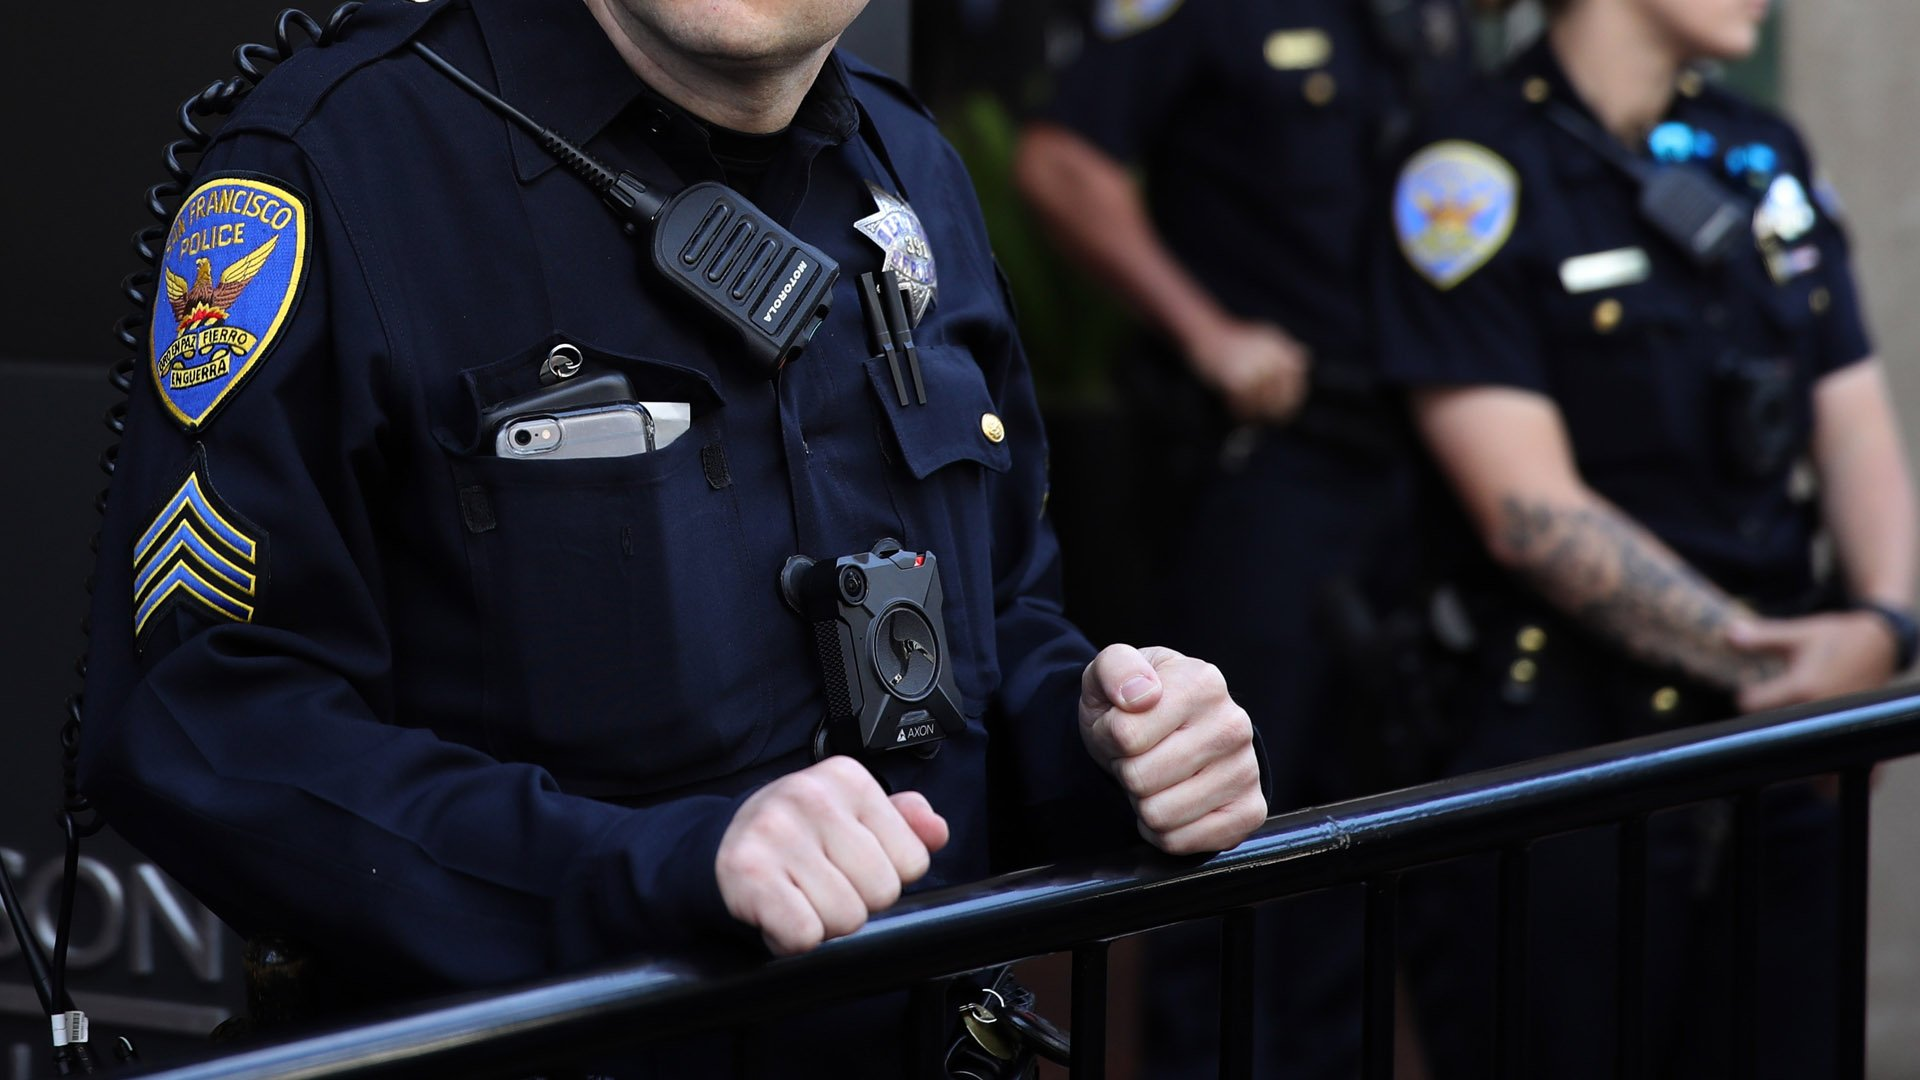 A San Francisco police officer monitors a protest on Aug. 27, 2019, in San Francisco. (Credit: Justin Sullivan/Getty Images)